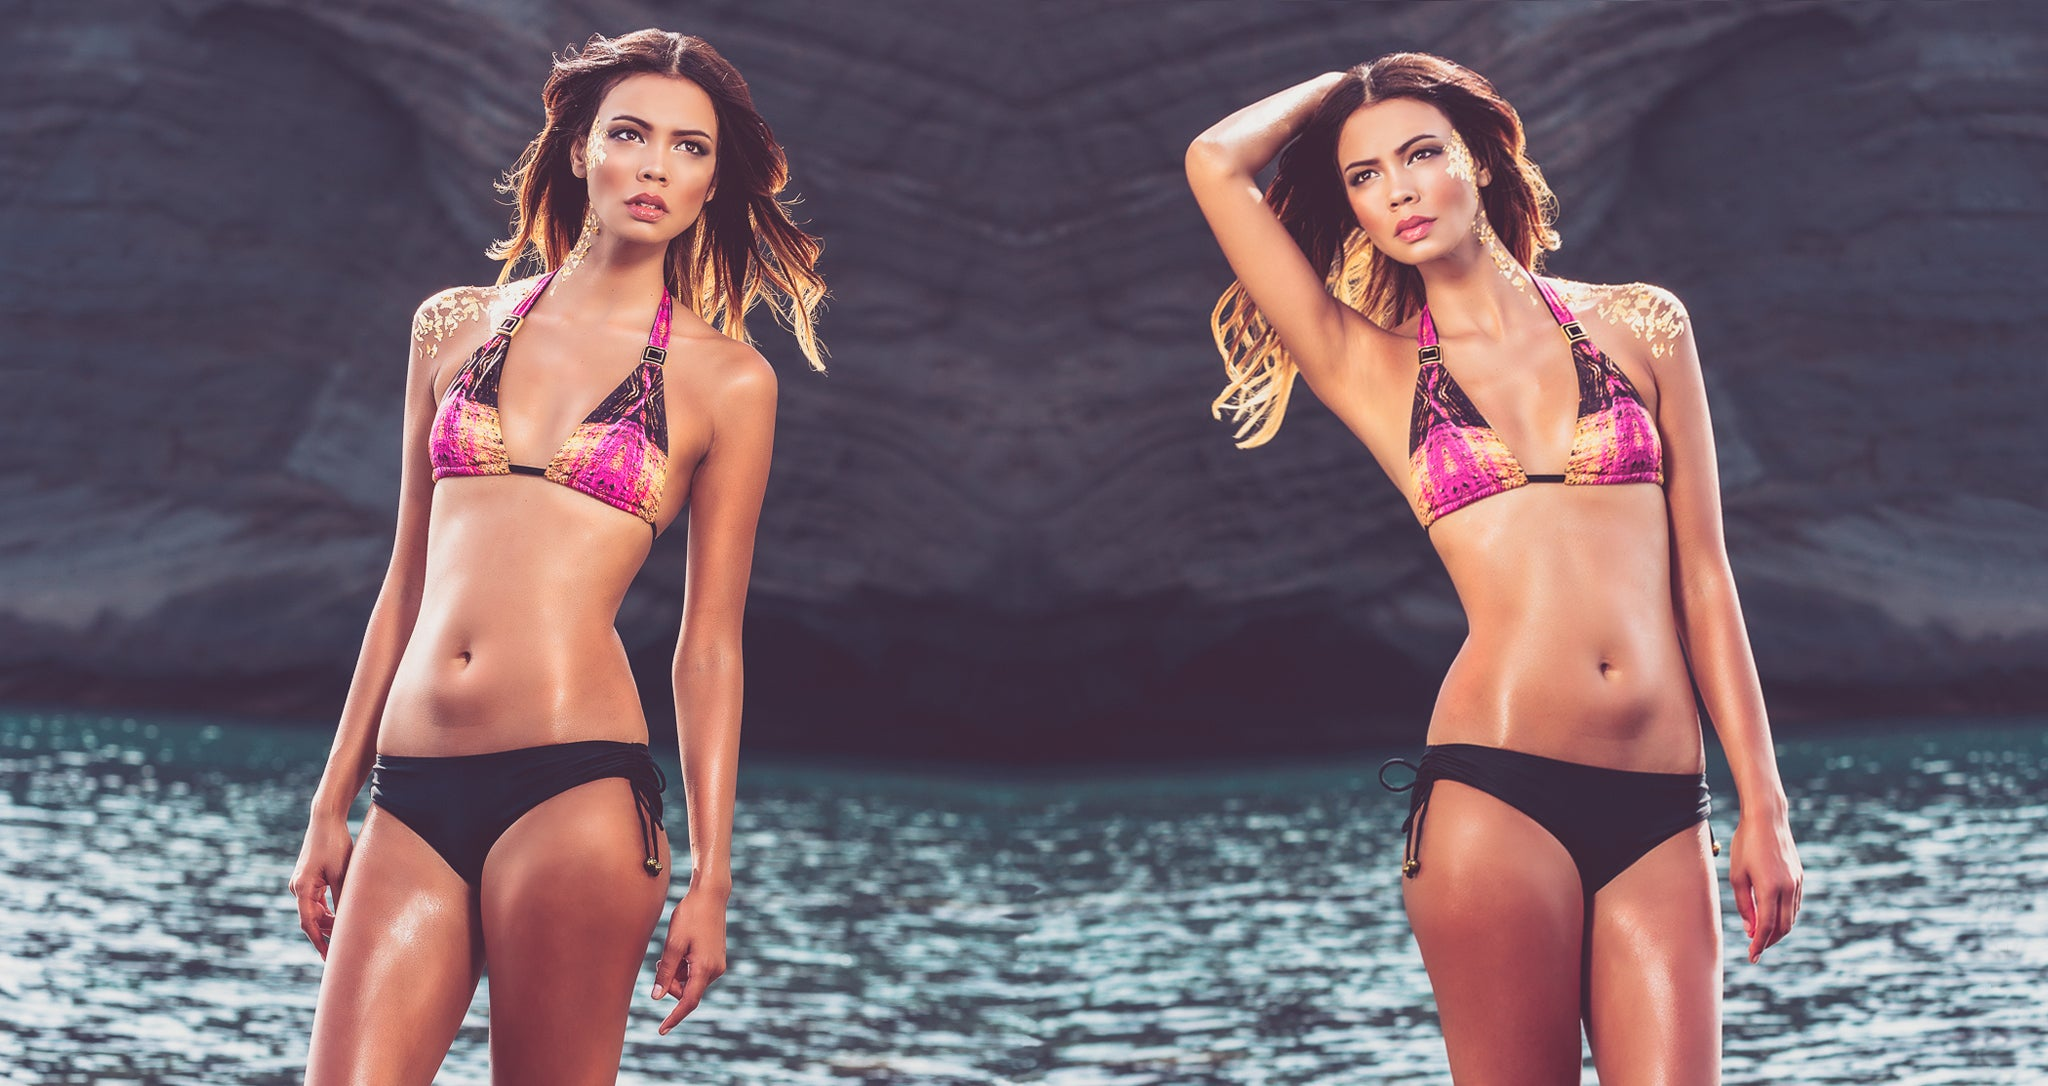 Shop Mer Culture Swimwear | GeoSensual Look 3 | Strata Glow Halter Top and Volcanic Black Beach Bum Bottom Bikini